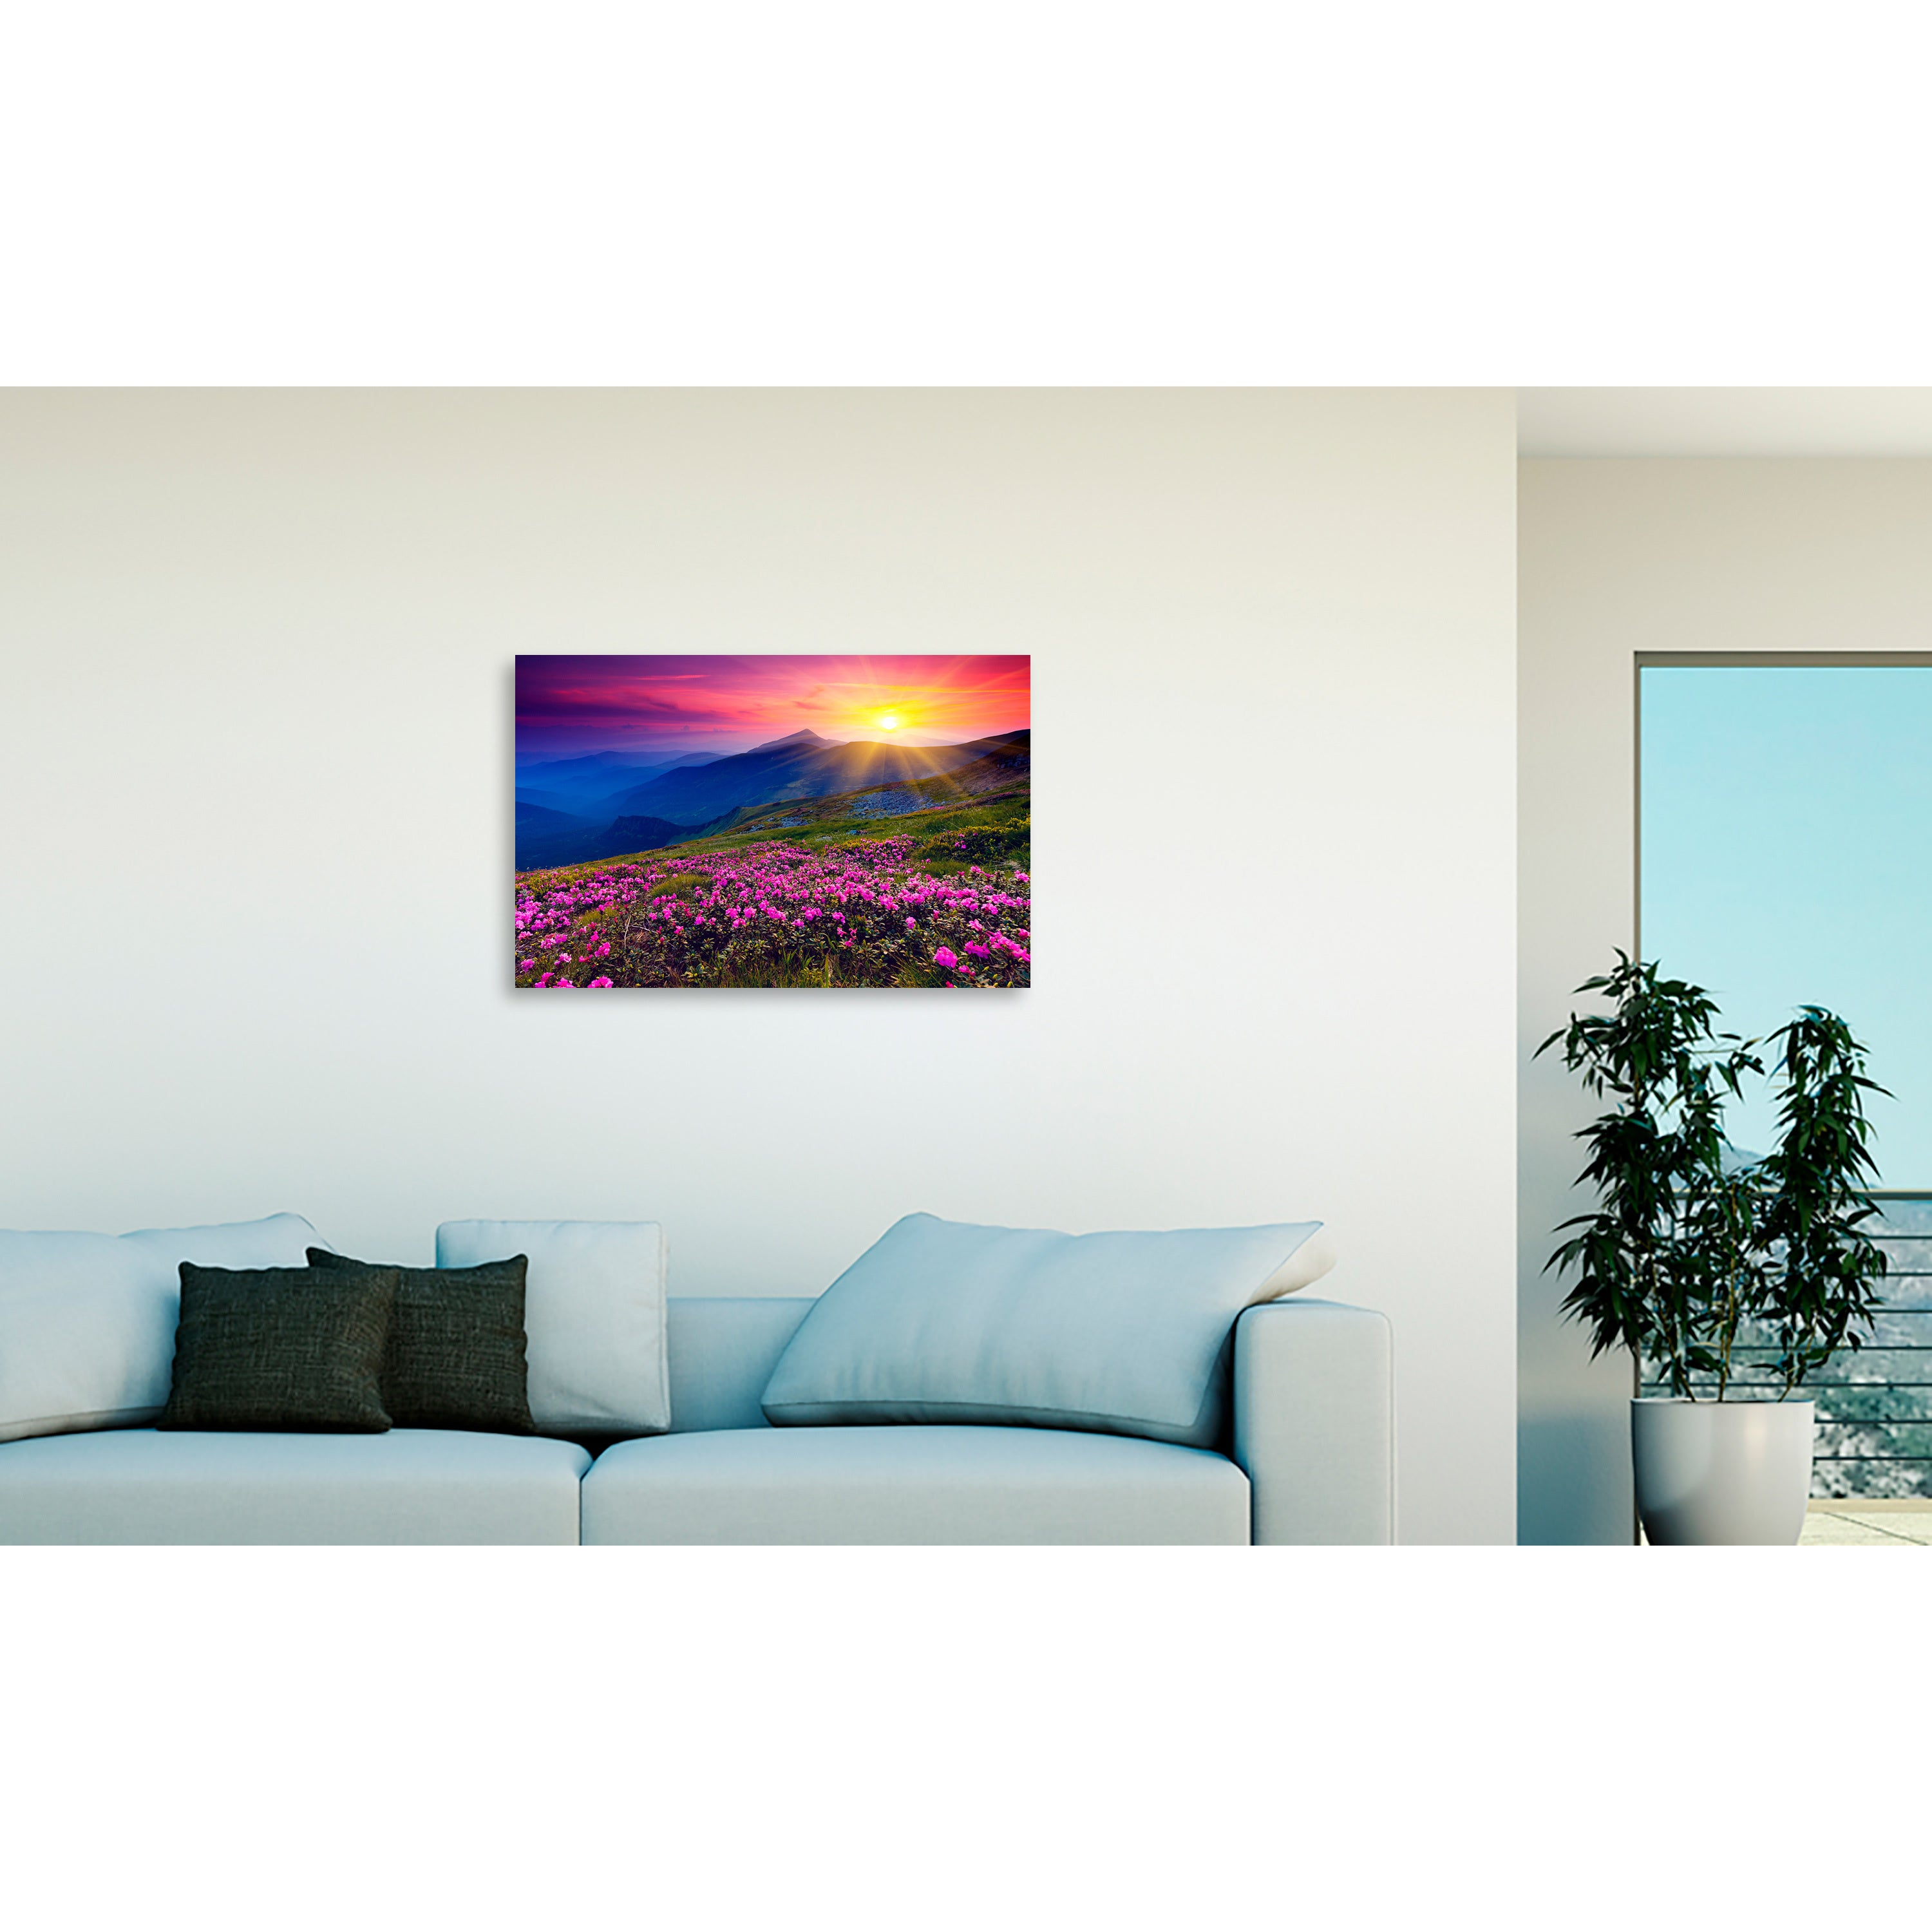 Mountain Landscape Oversized Gallery Wrapped Canvas Today $142.49